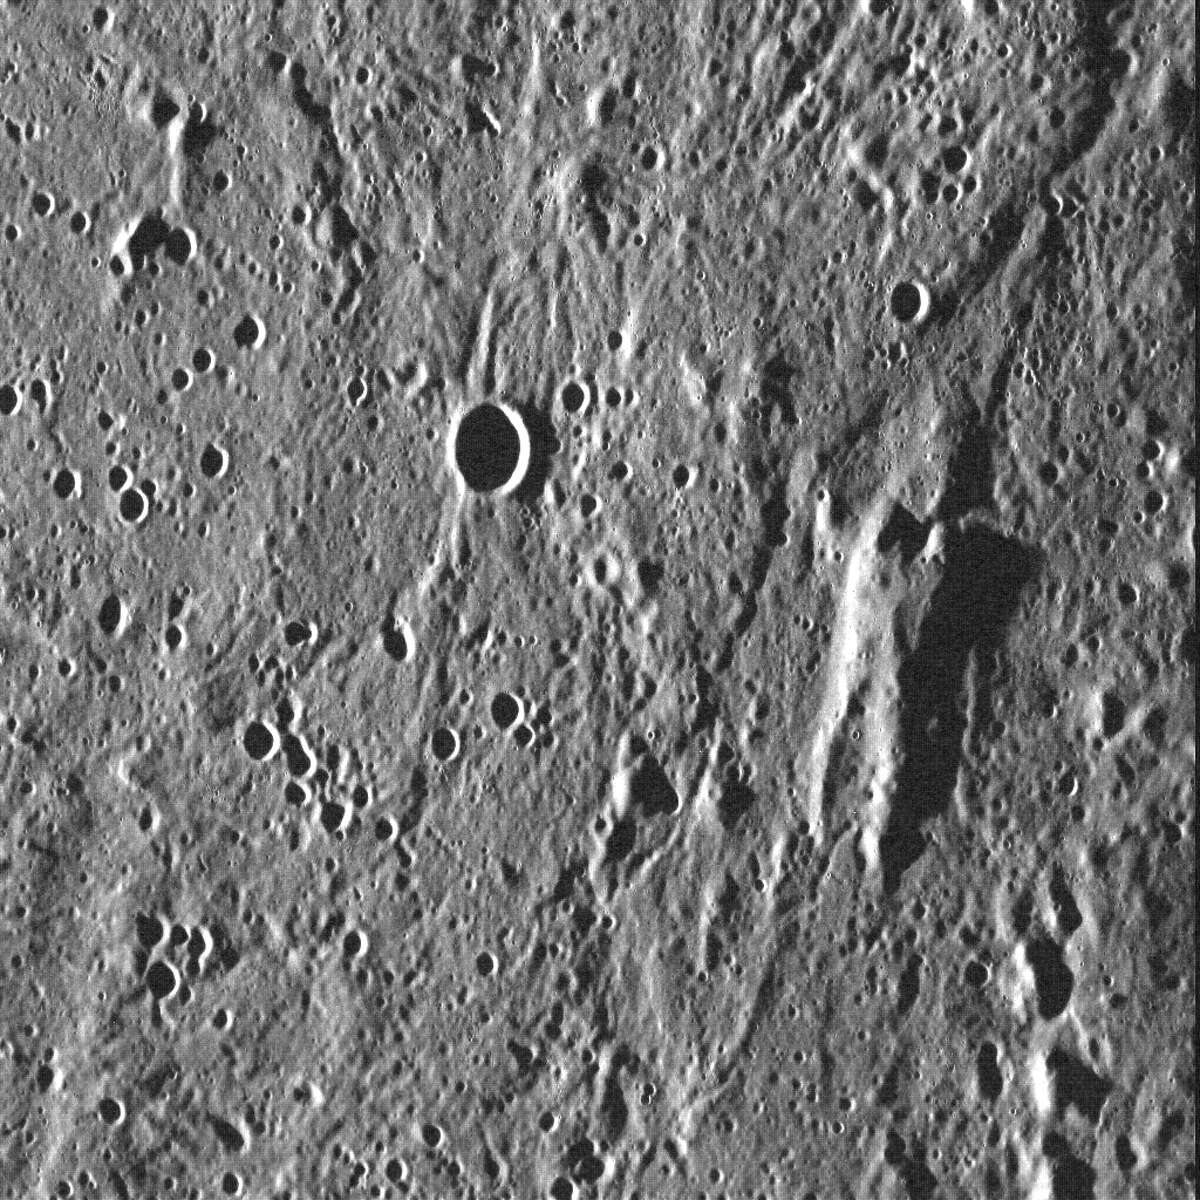 A NASA photo of the surface of Mercury shows the likeness of Han Solo's frozen silhouette.